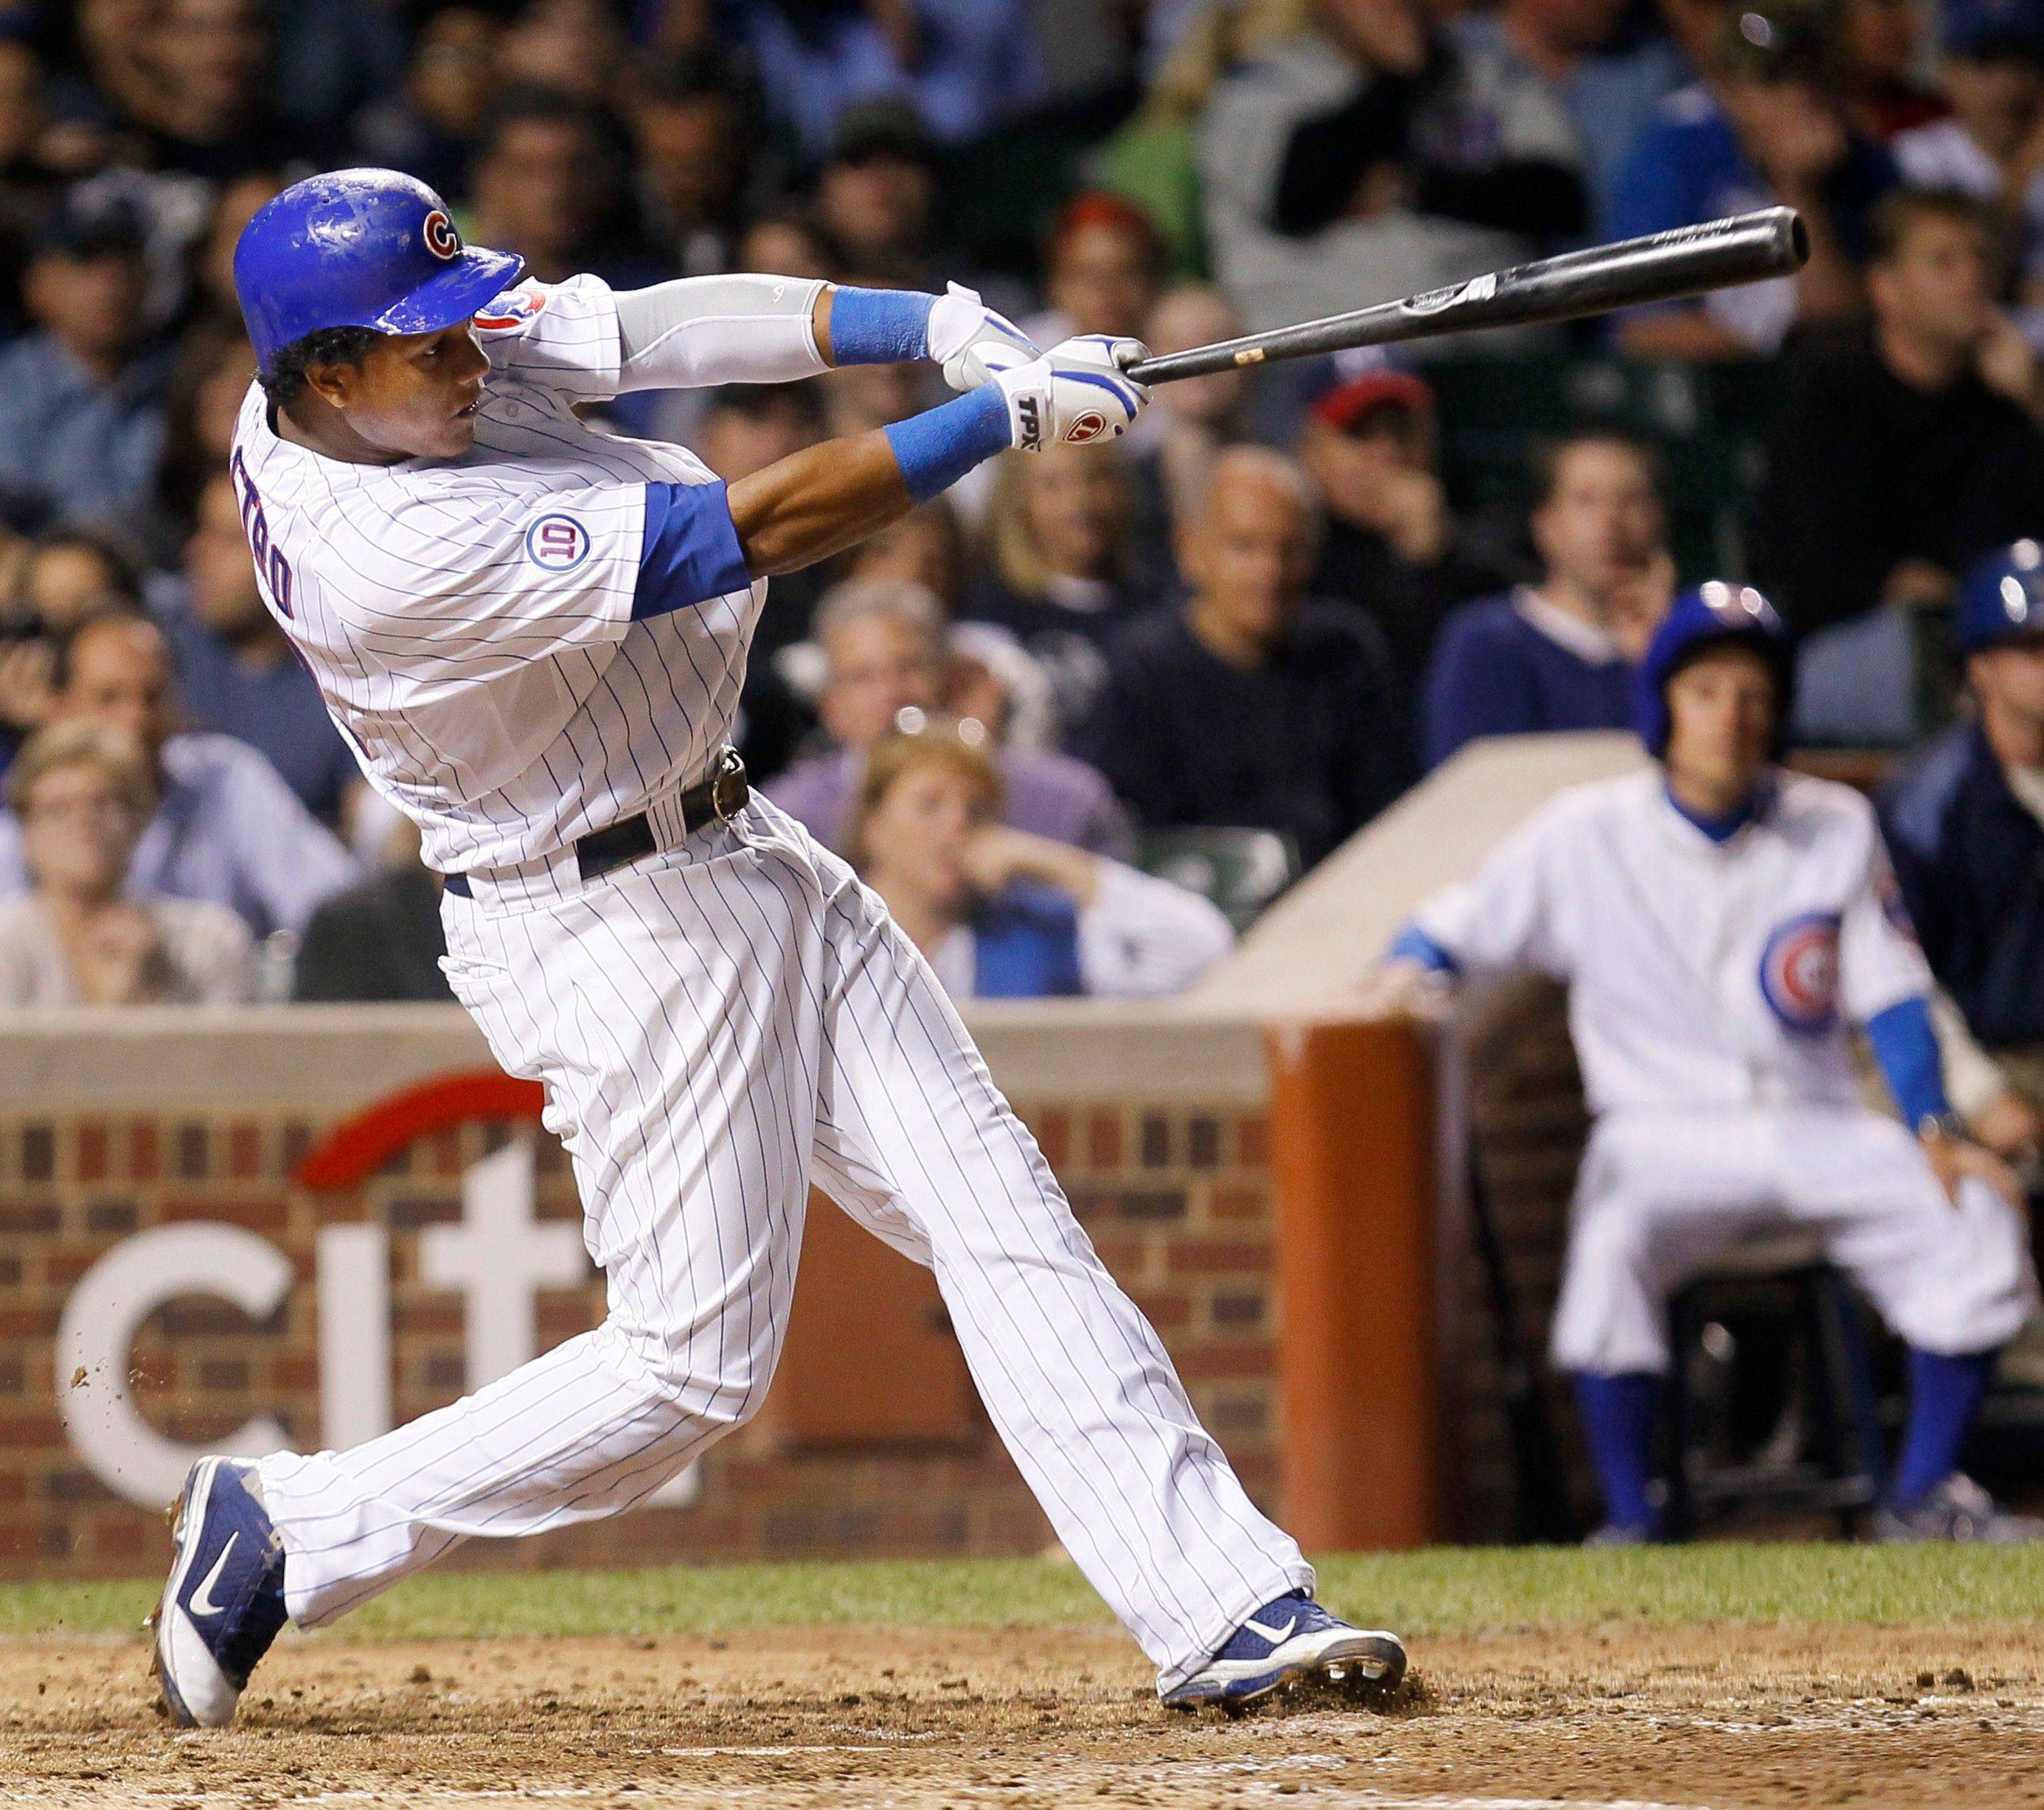 Cubs Starlin Castro hits a home run off Milwaukee Brewers starting pitcher Shaun Marcum during the sixth inning Tuesday night.